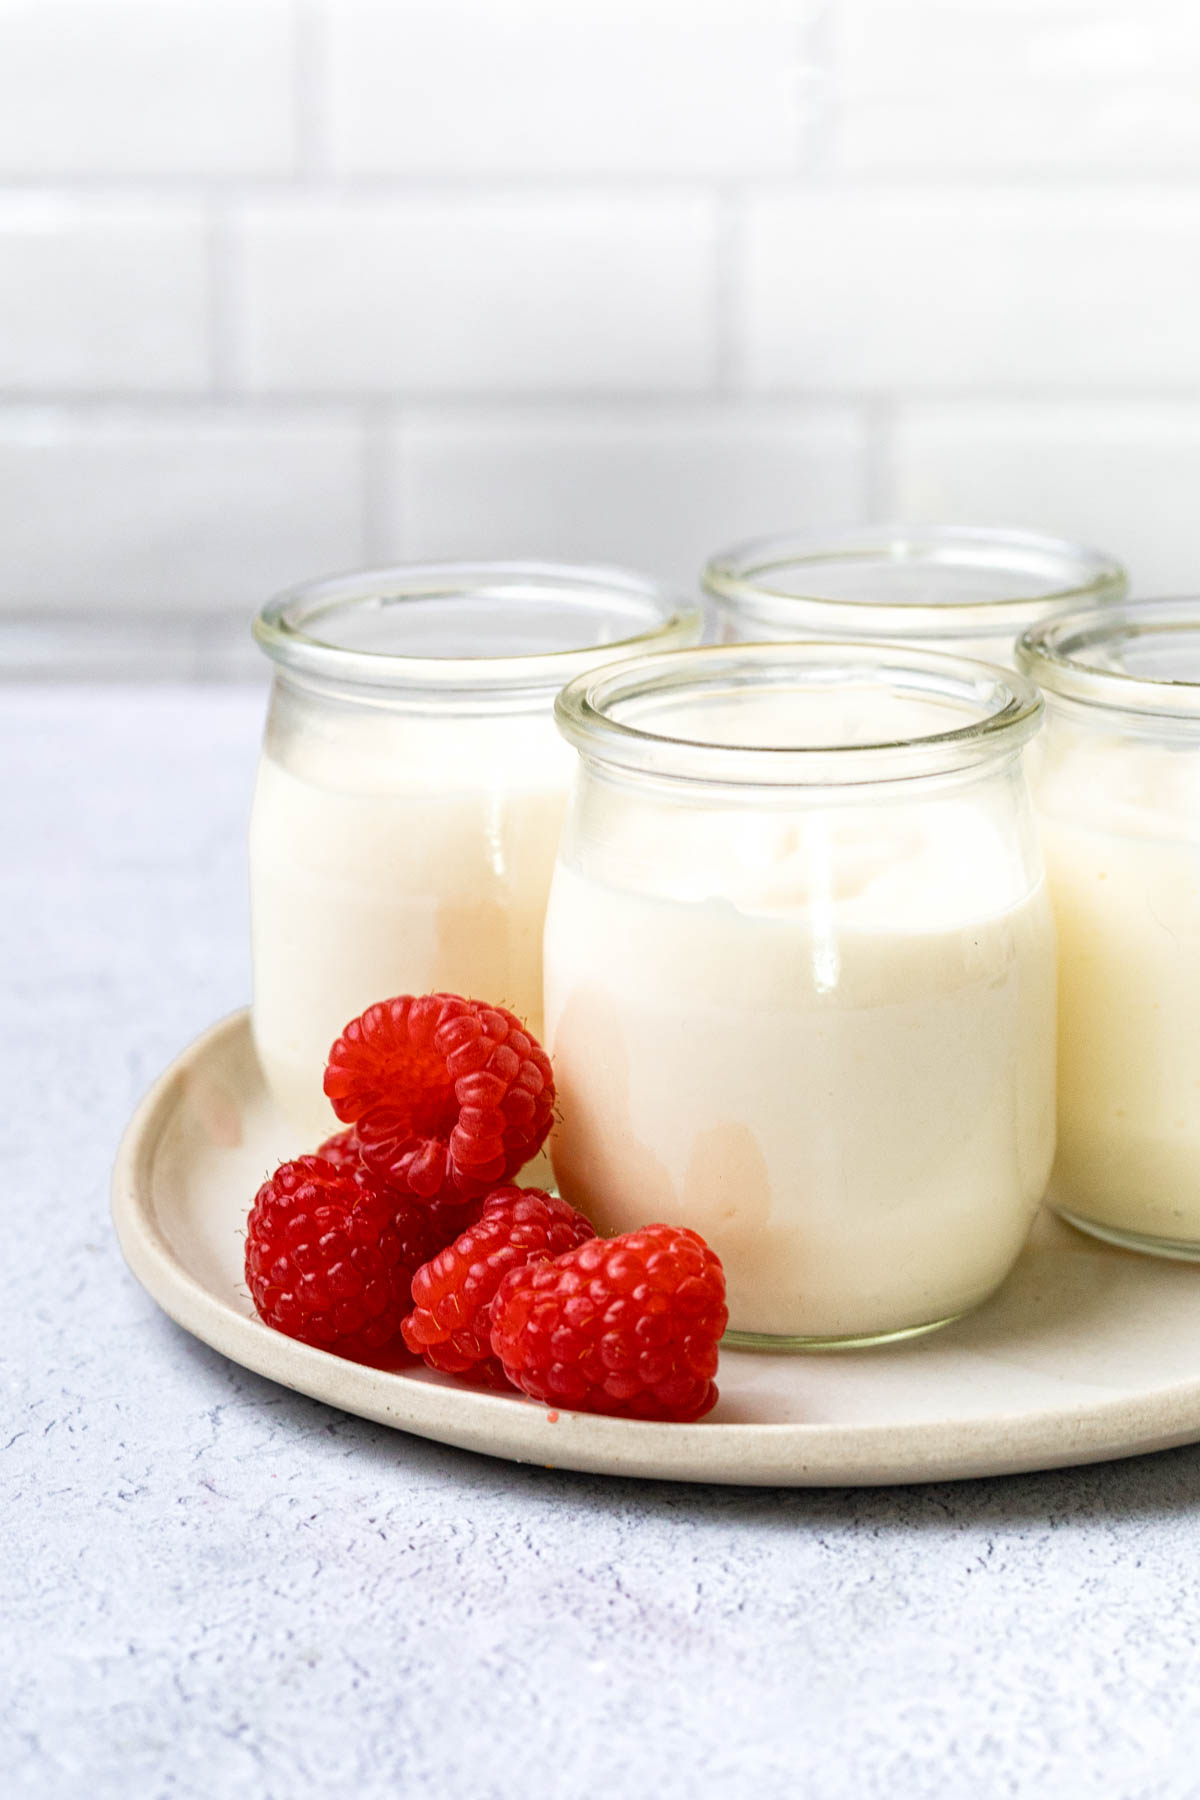 Jars of white chocolate mousse on a beige ceramic platter with fresh raspberries nearby.